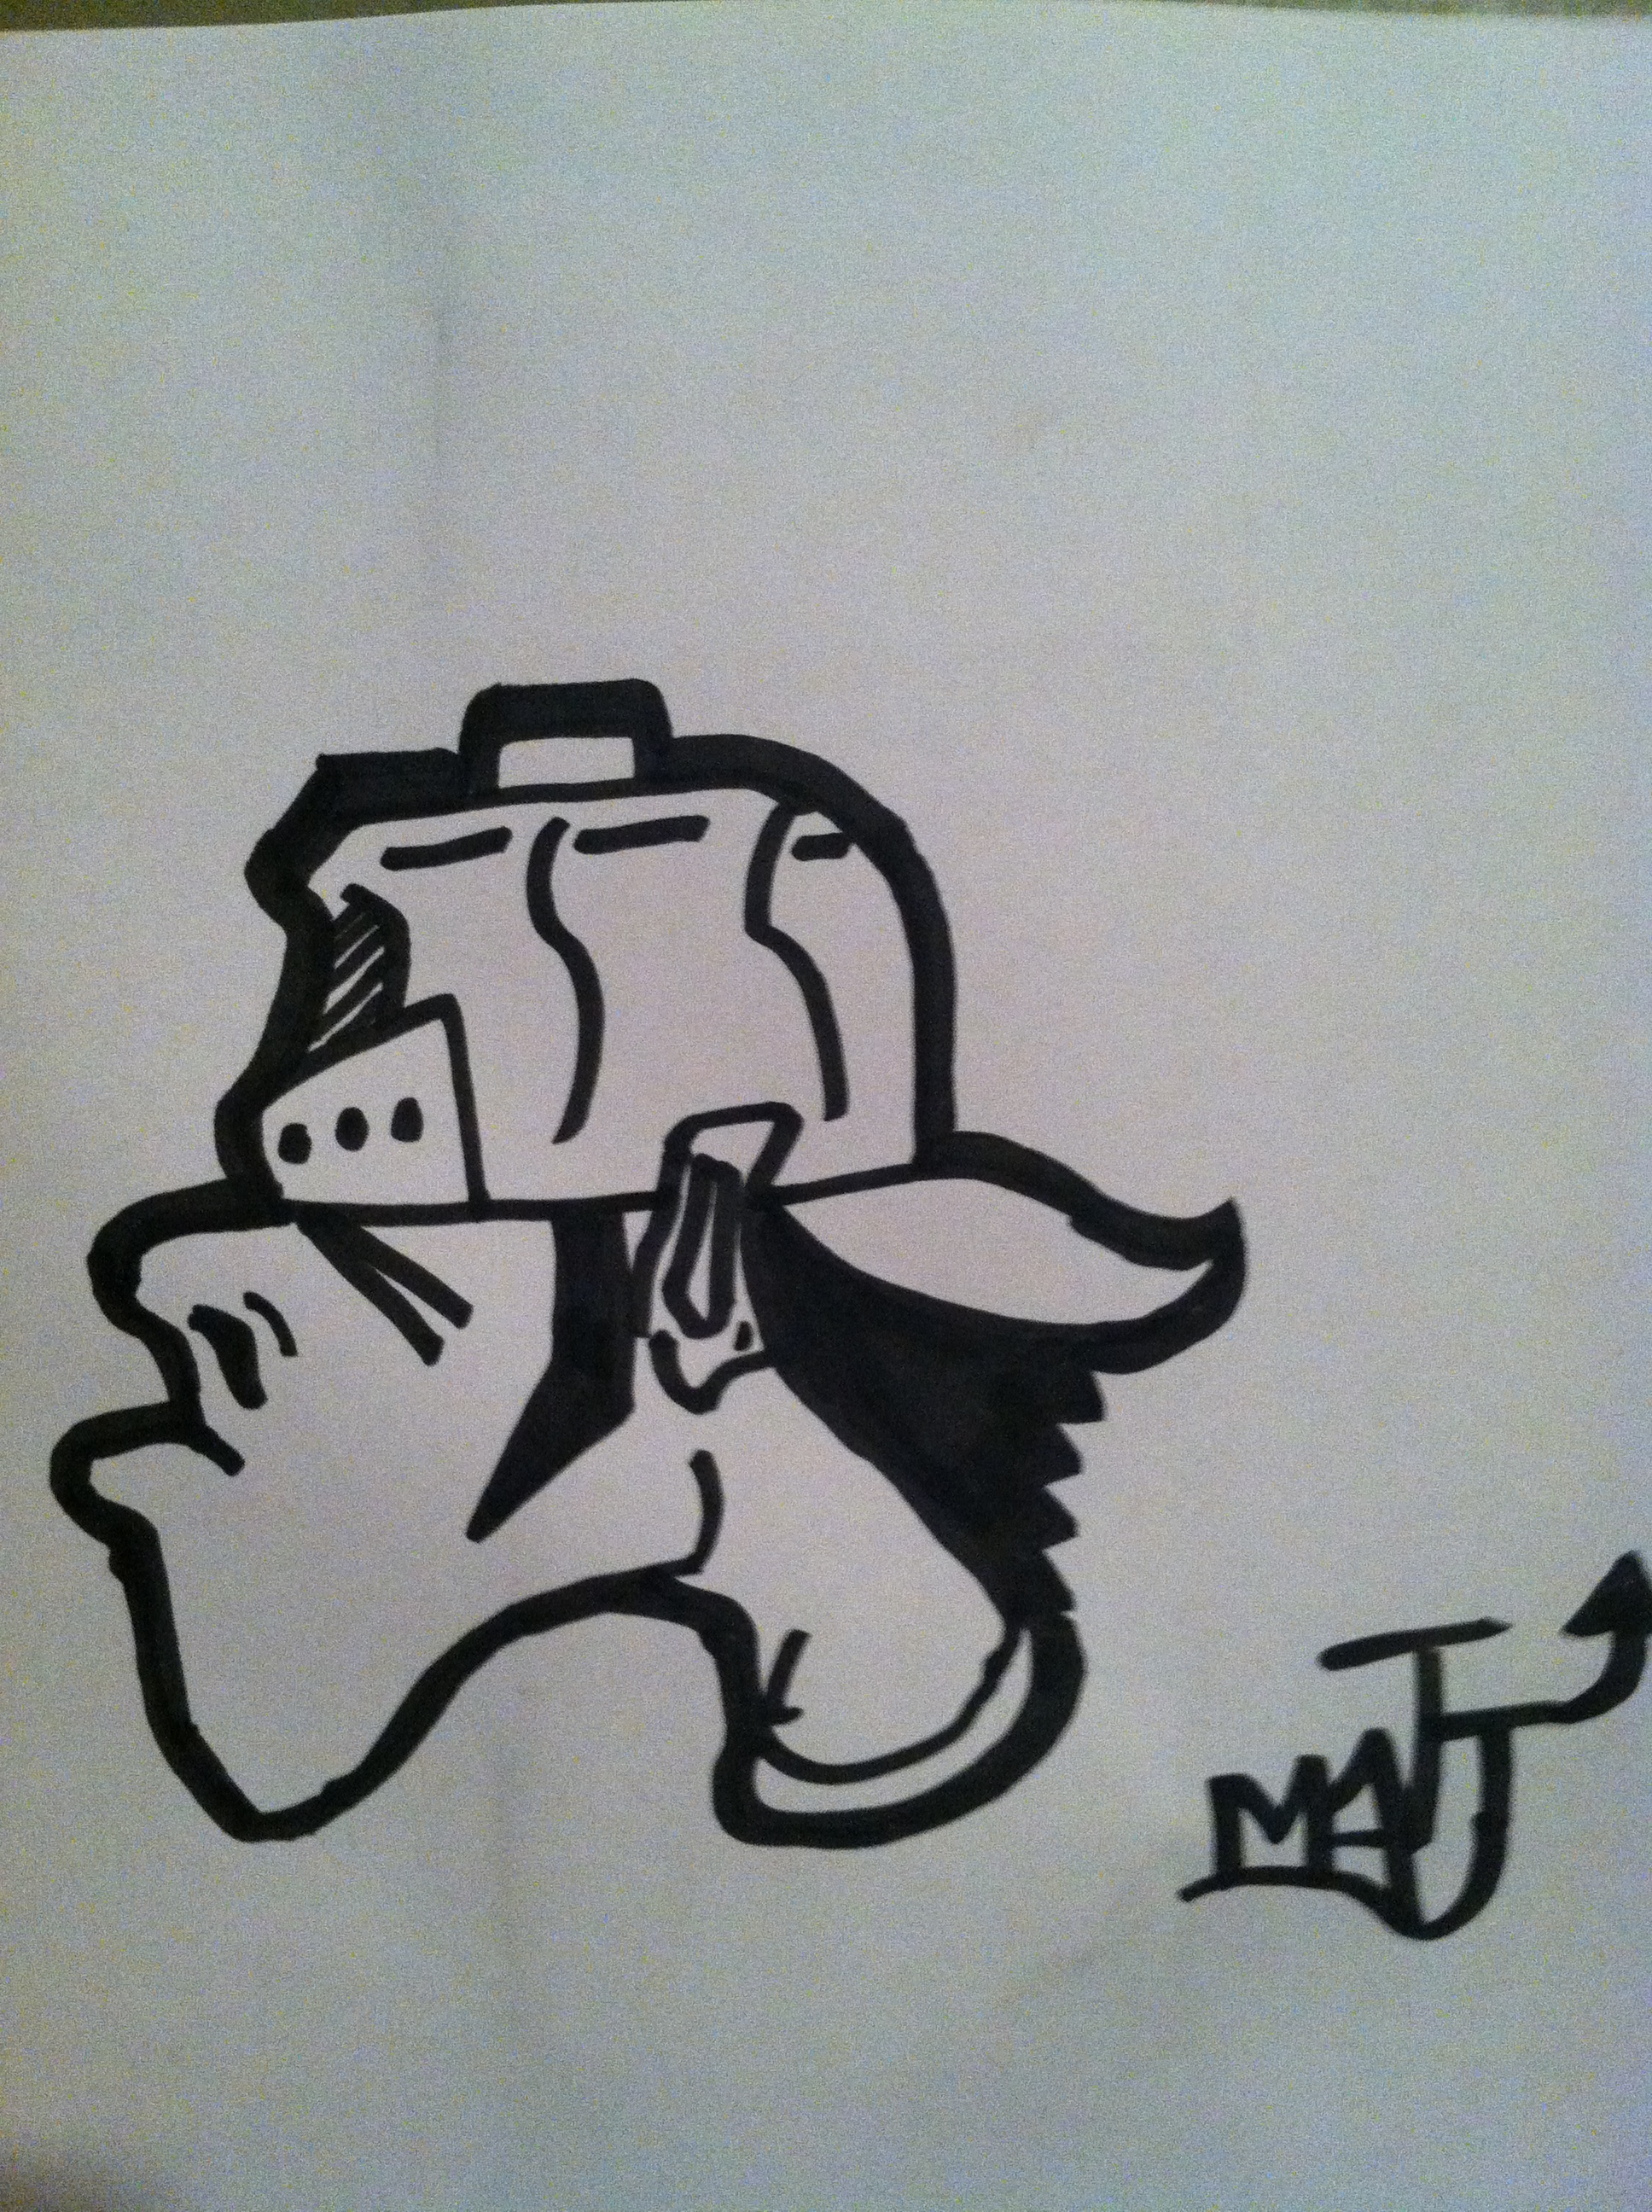 Pin easy graffiti spray can characters on pinterest - Graffiti simple ...